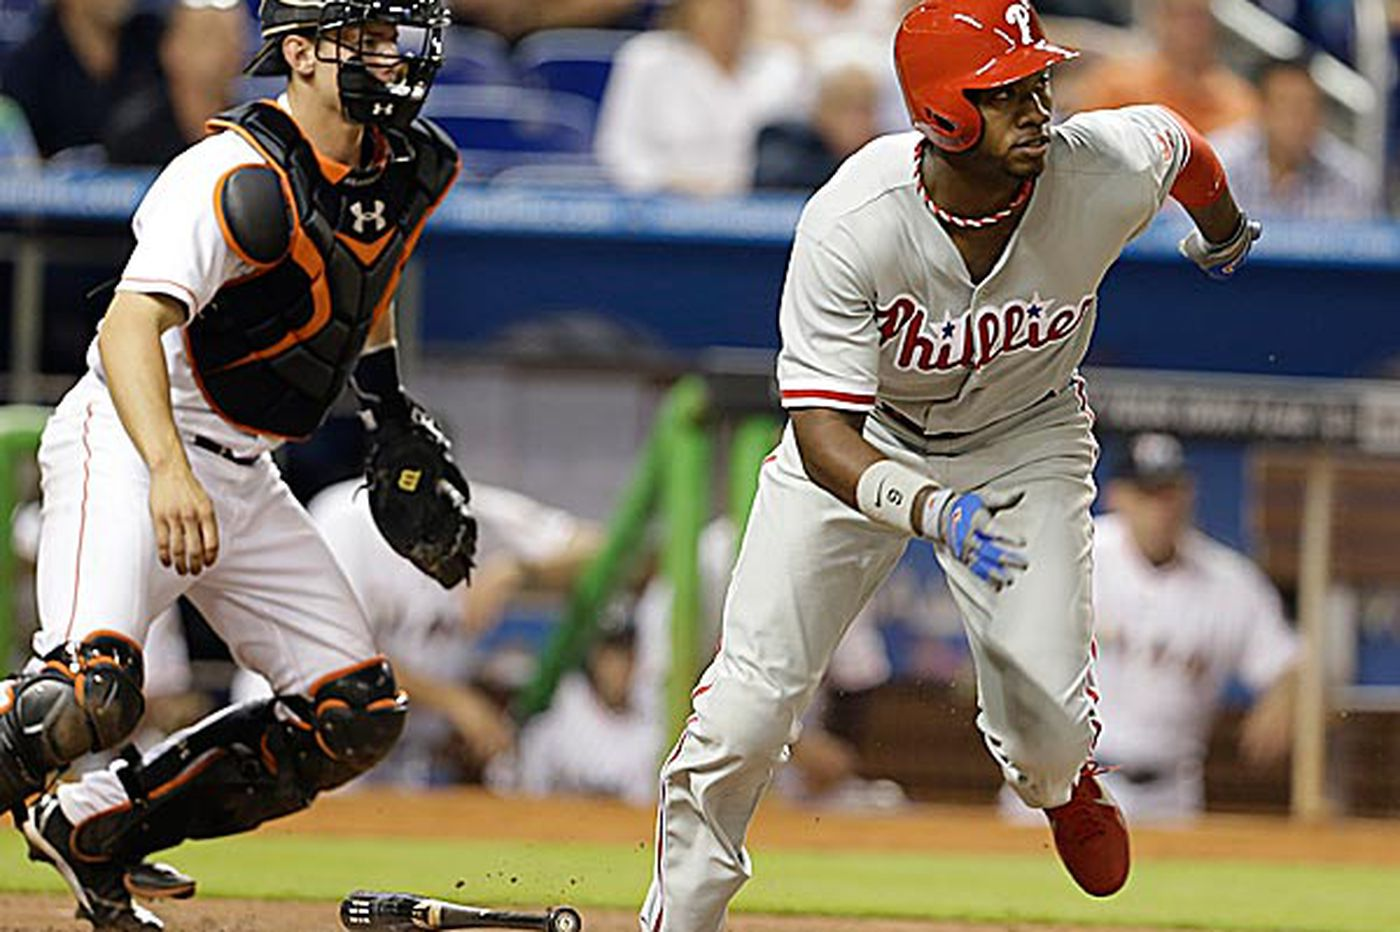 Phillies Notebook: Hot-hitting Brown named NL Player of the Week